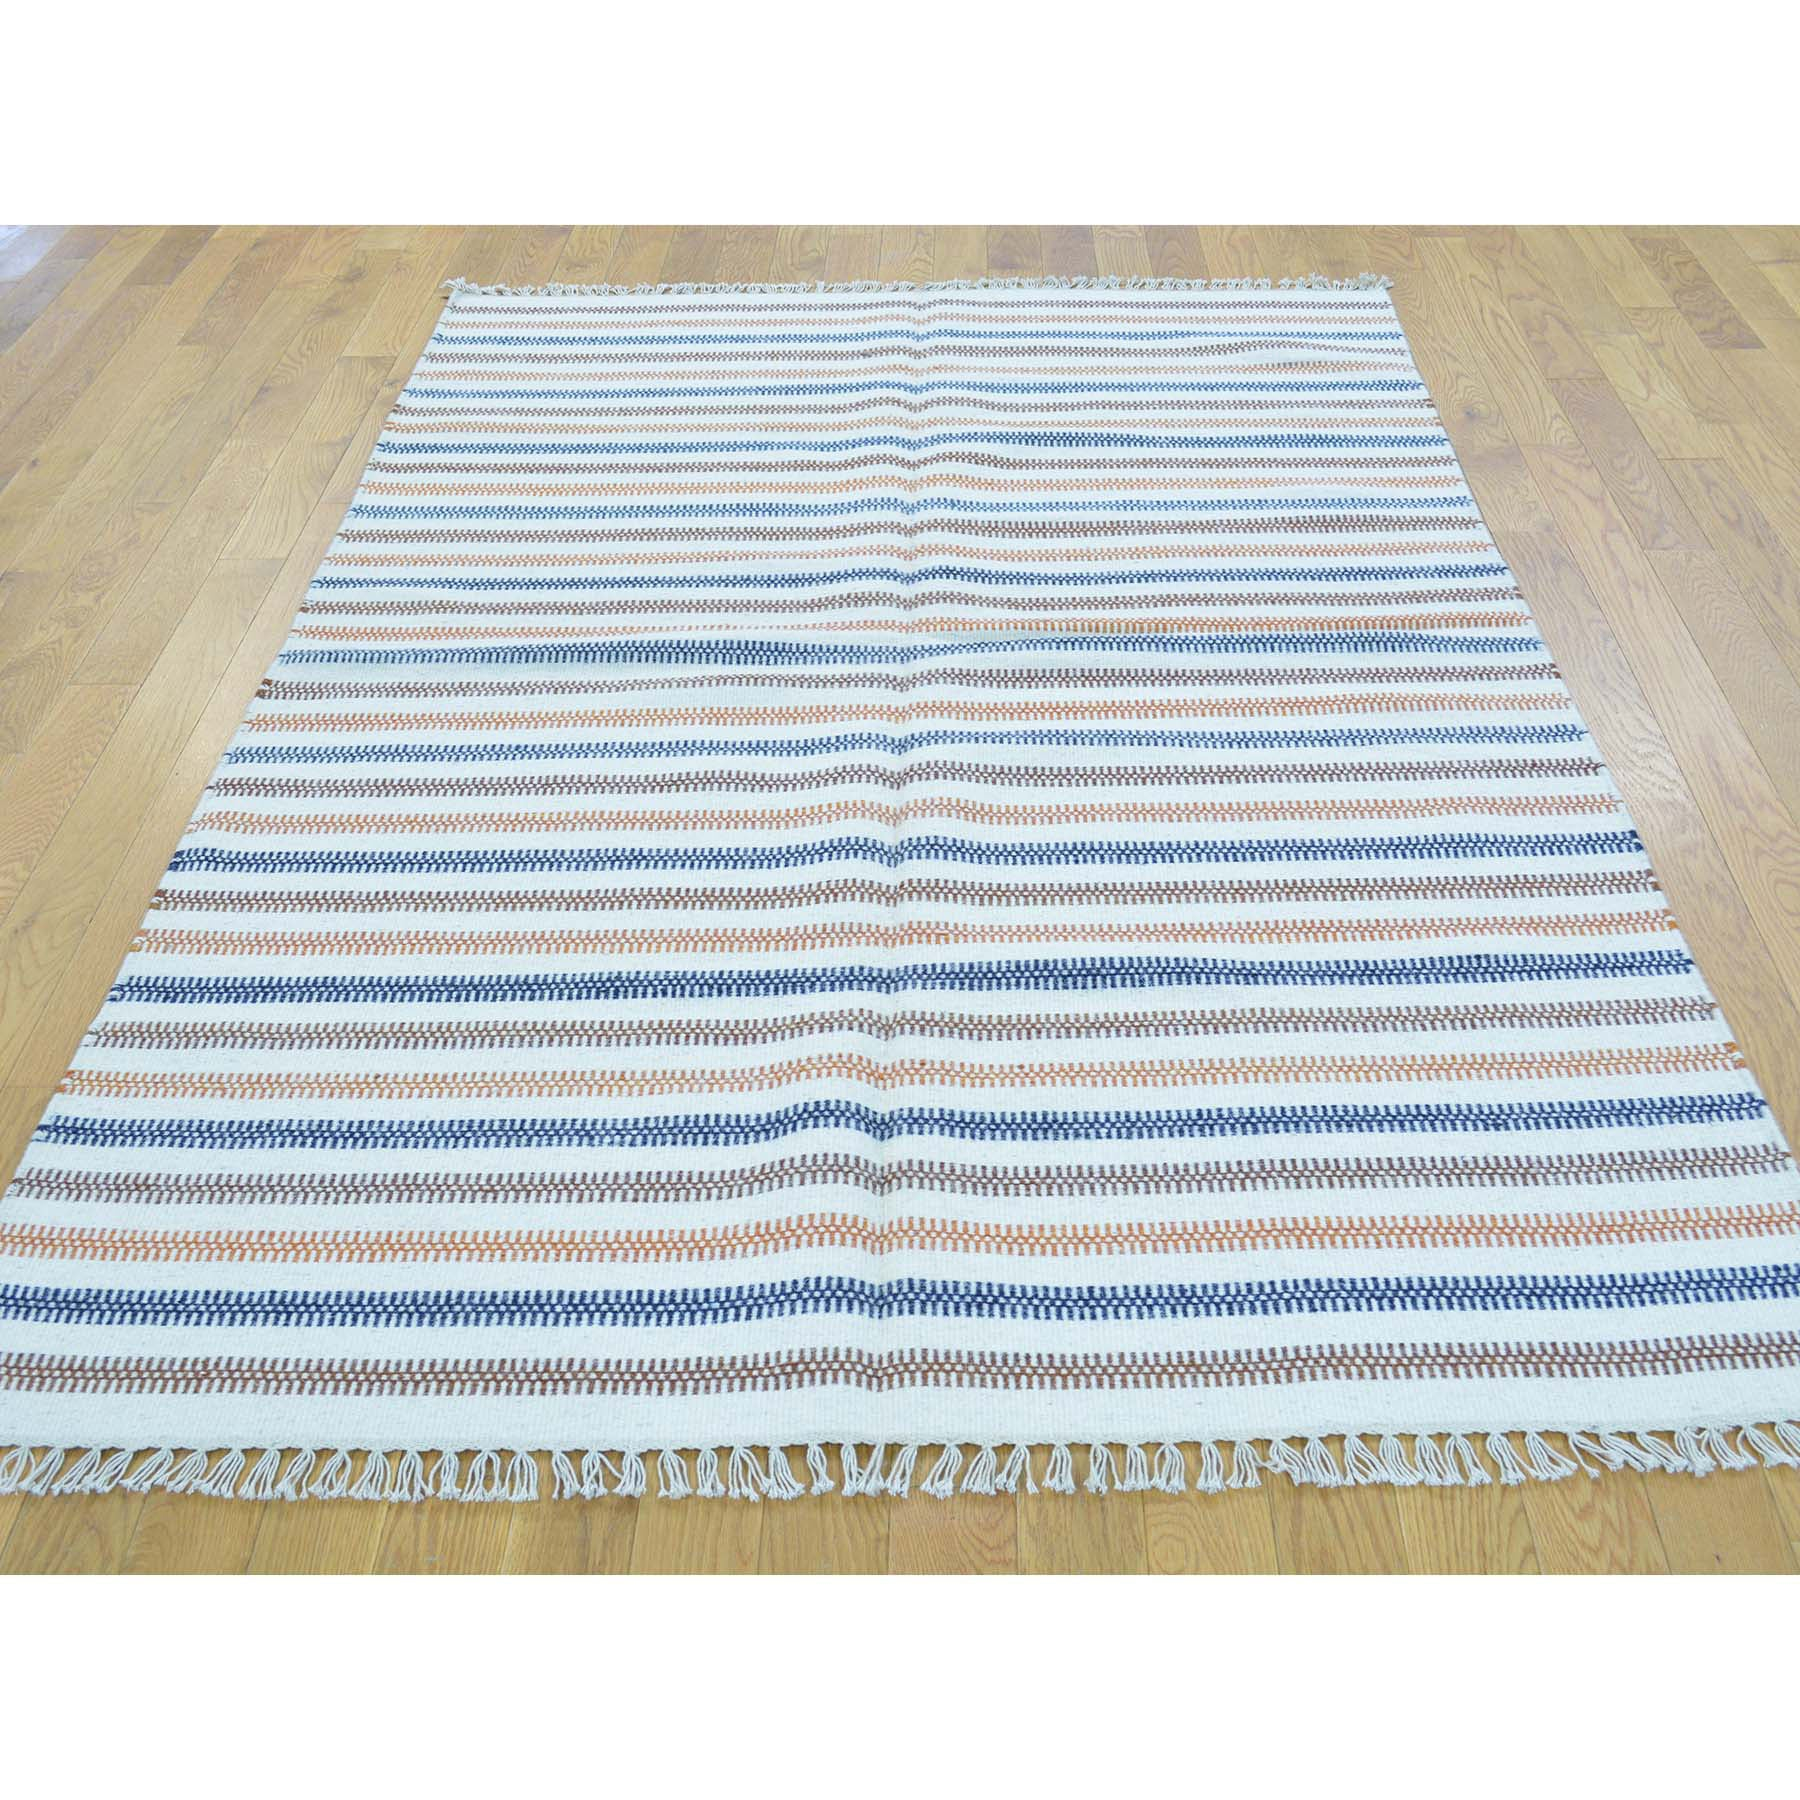 "Handmade Flat Weave Rectangle Rug > Design# SH30055 > Size: 4'-7"" x 6'-8"" [ONLINE ONLY]"